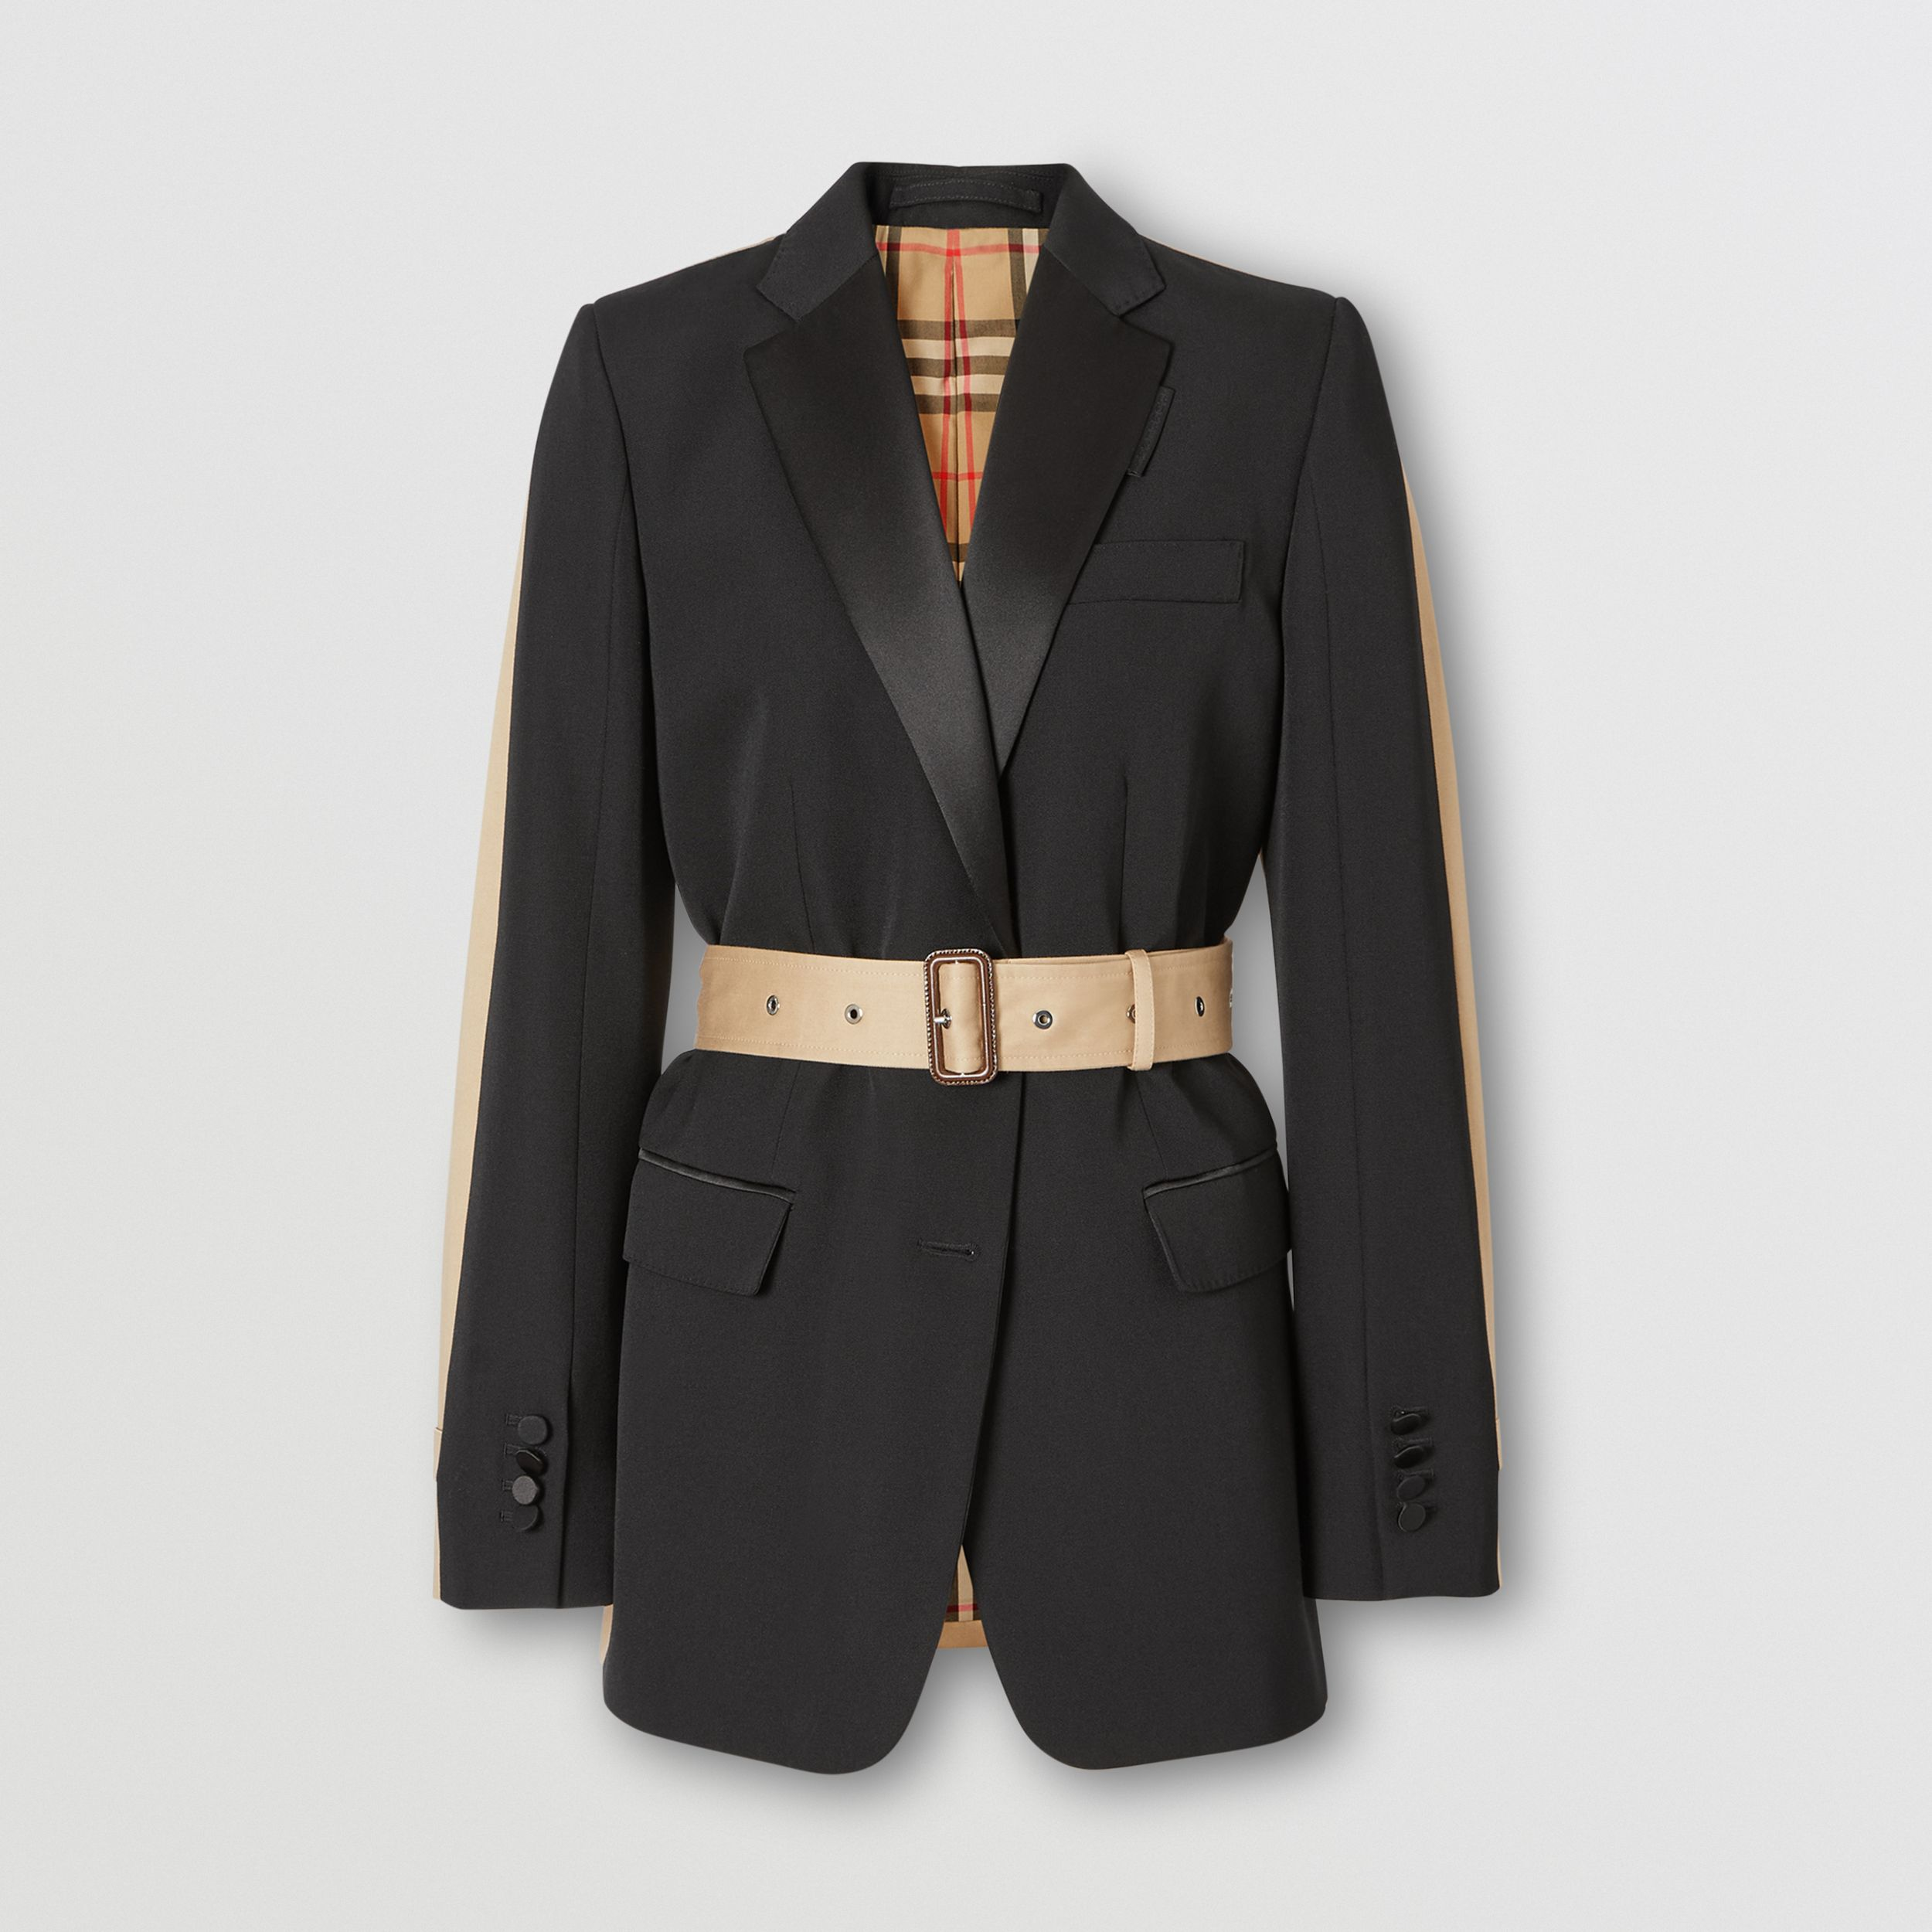 Grain De Poudre Wool and Cotton Tuxedo Jacket in Black | Burberry - 4